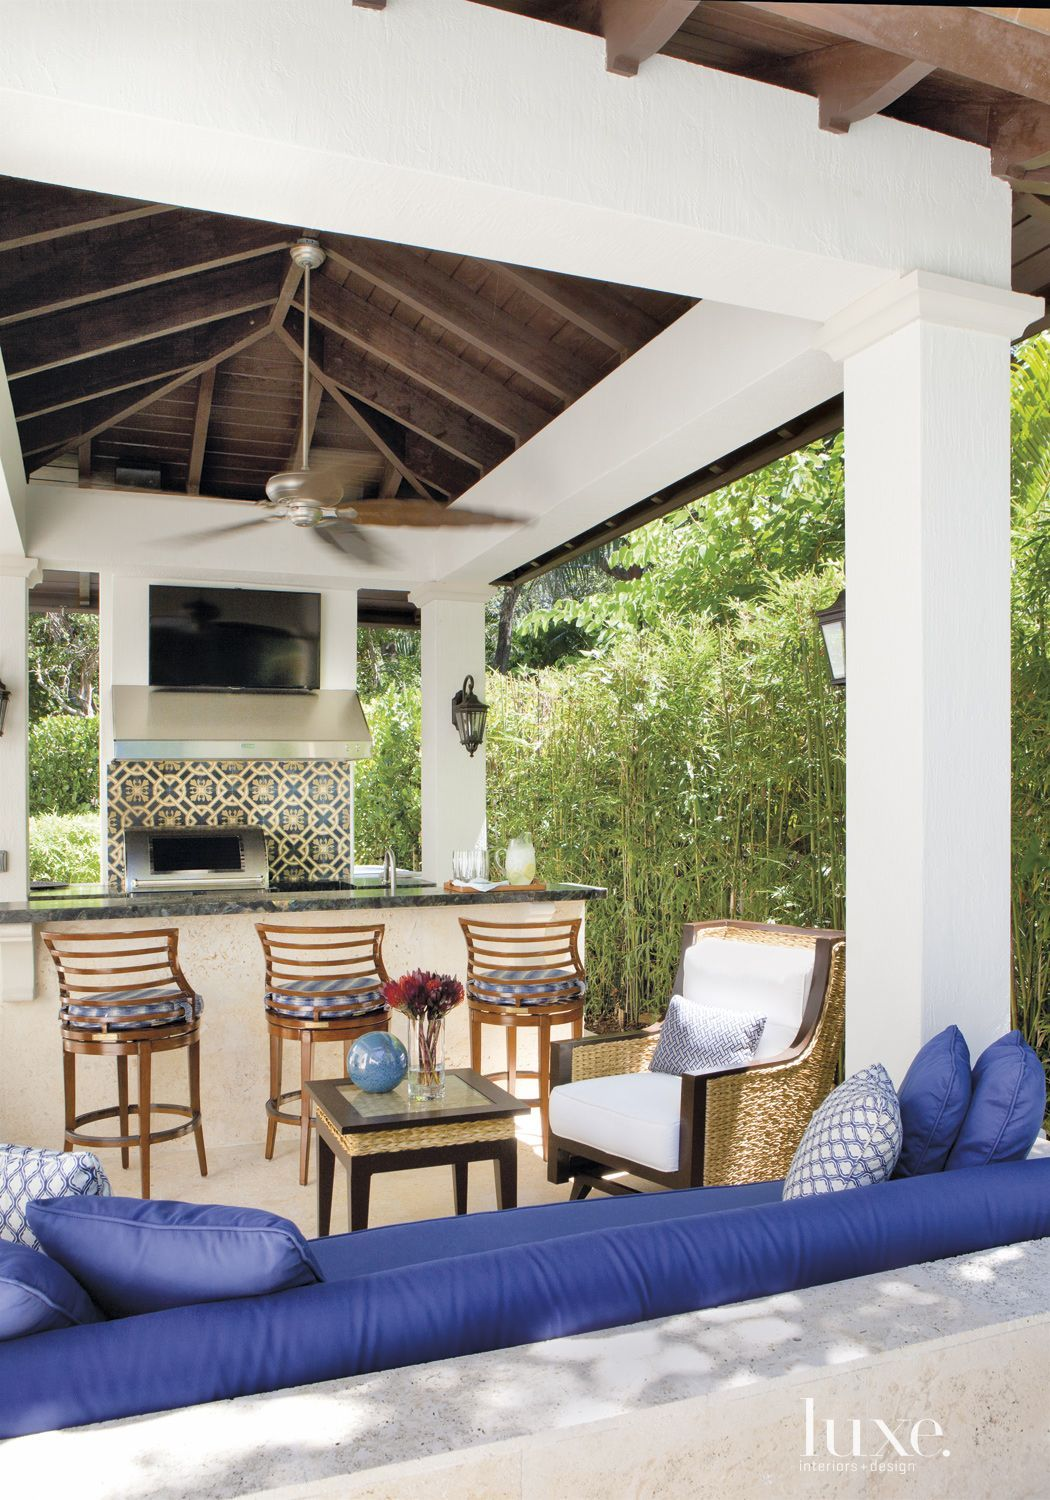 A Mediterranean Revival Home In Miami Beach Luxesource Luxe Magazine The Luxury Home Redefined Backyard Renovations Gazebo Outdoor Kitchen